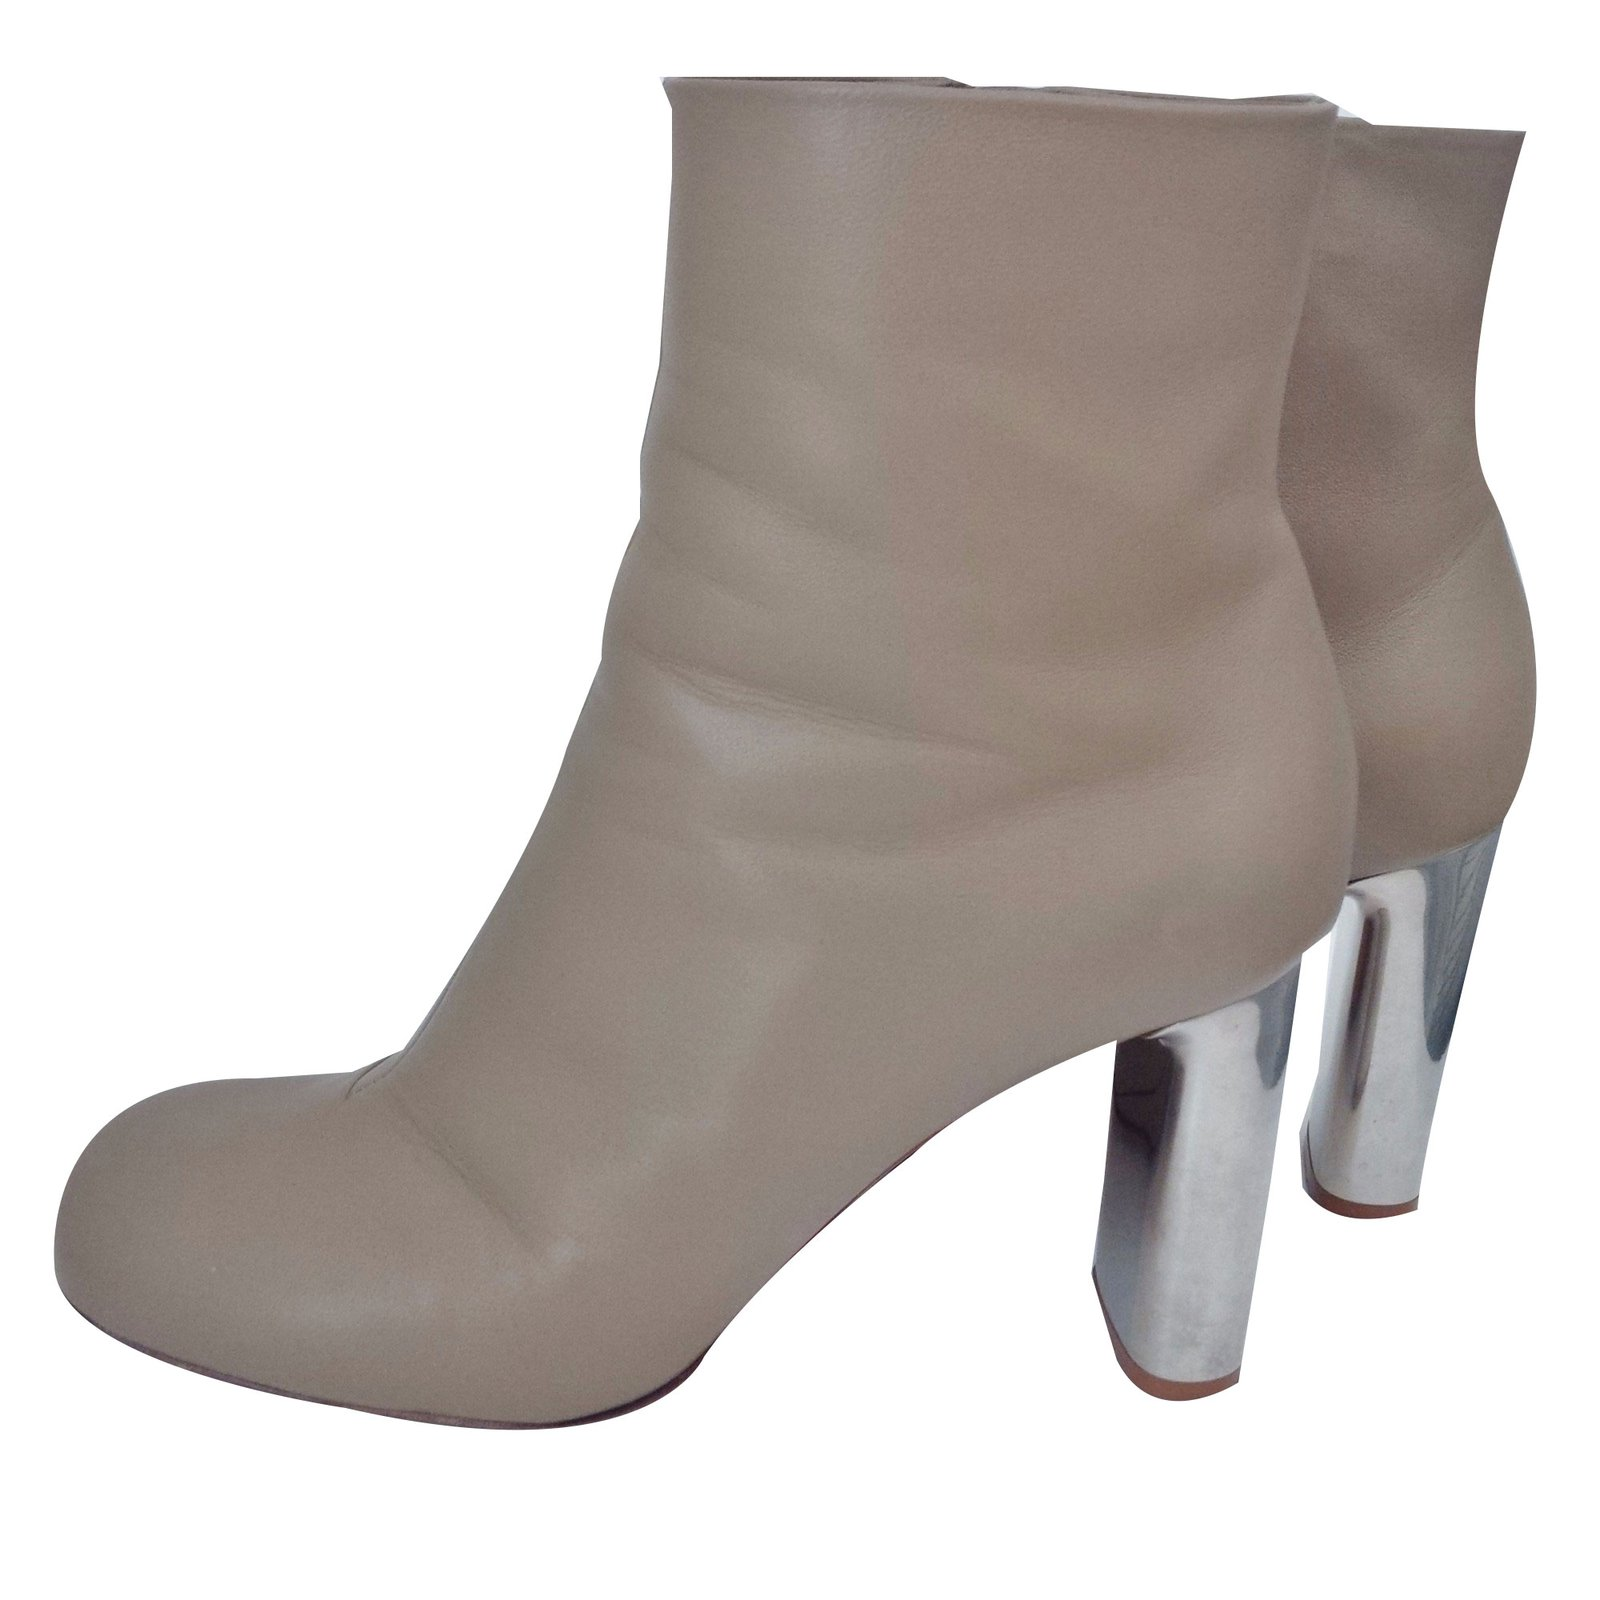 5a68be96357 Iconic Céline Bam Bam booties